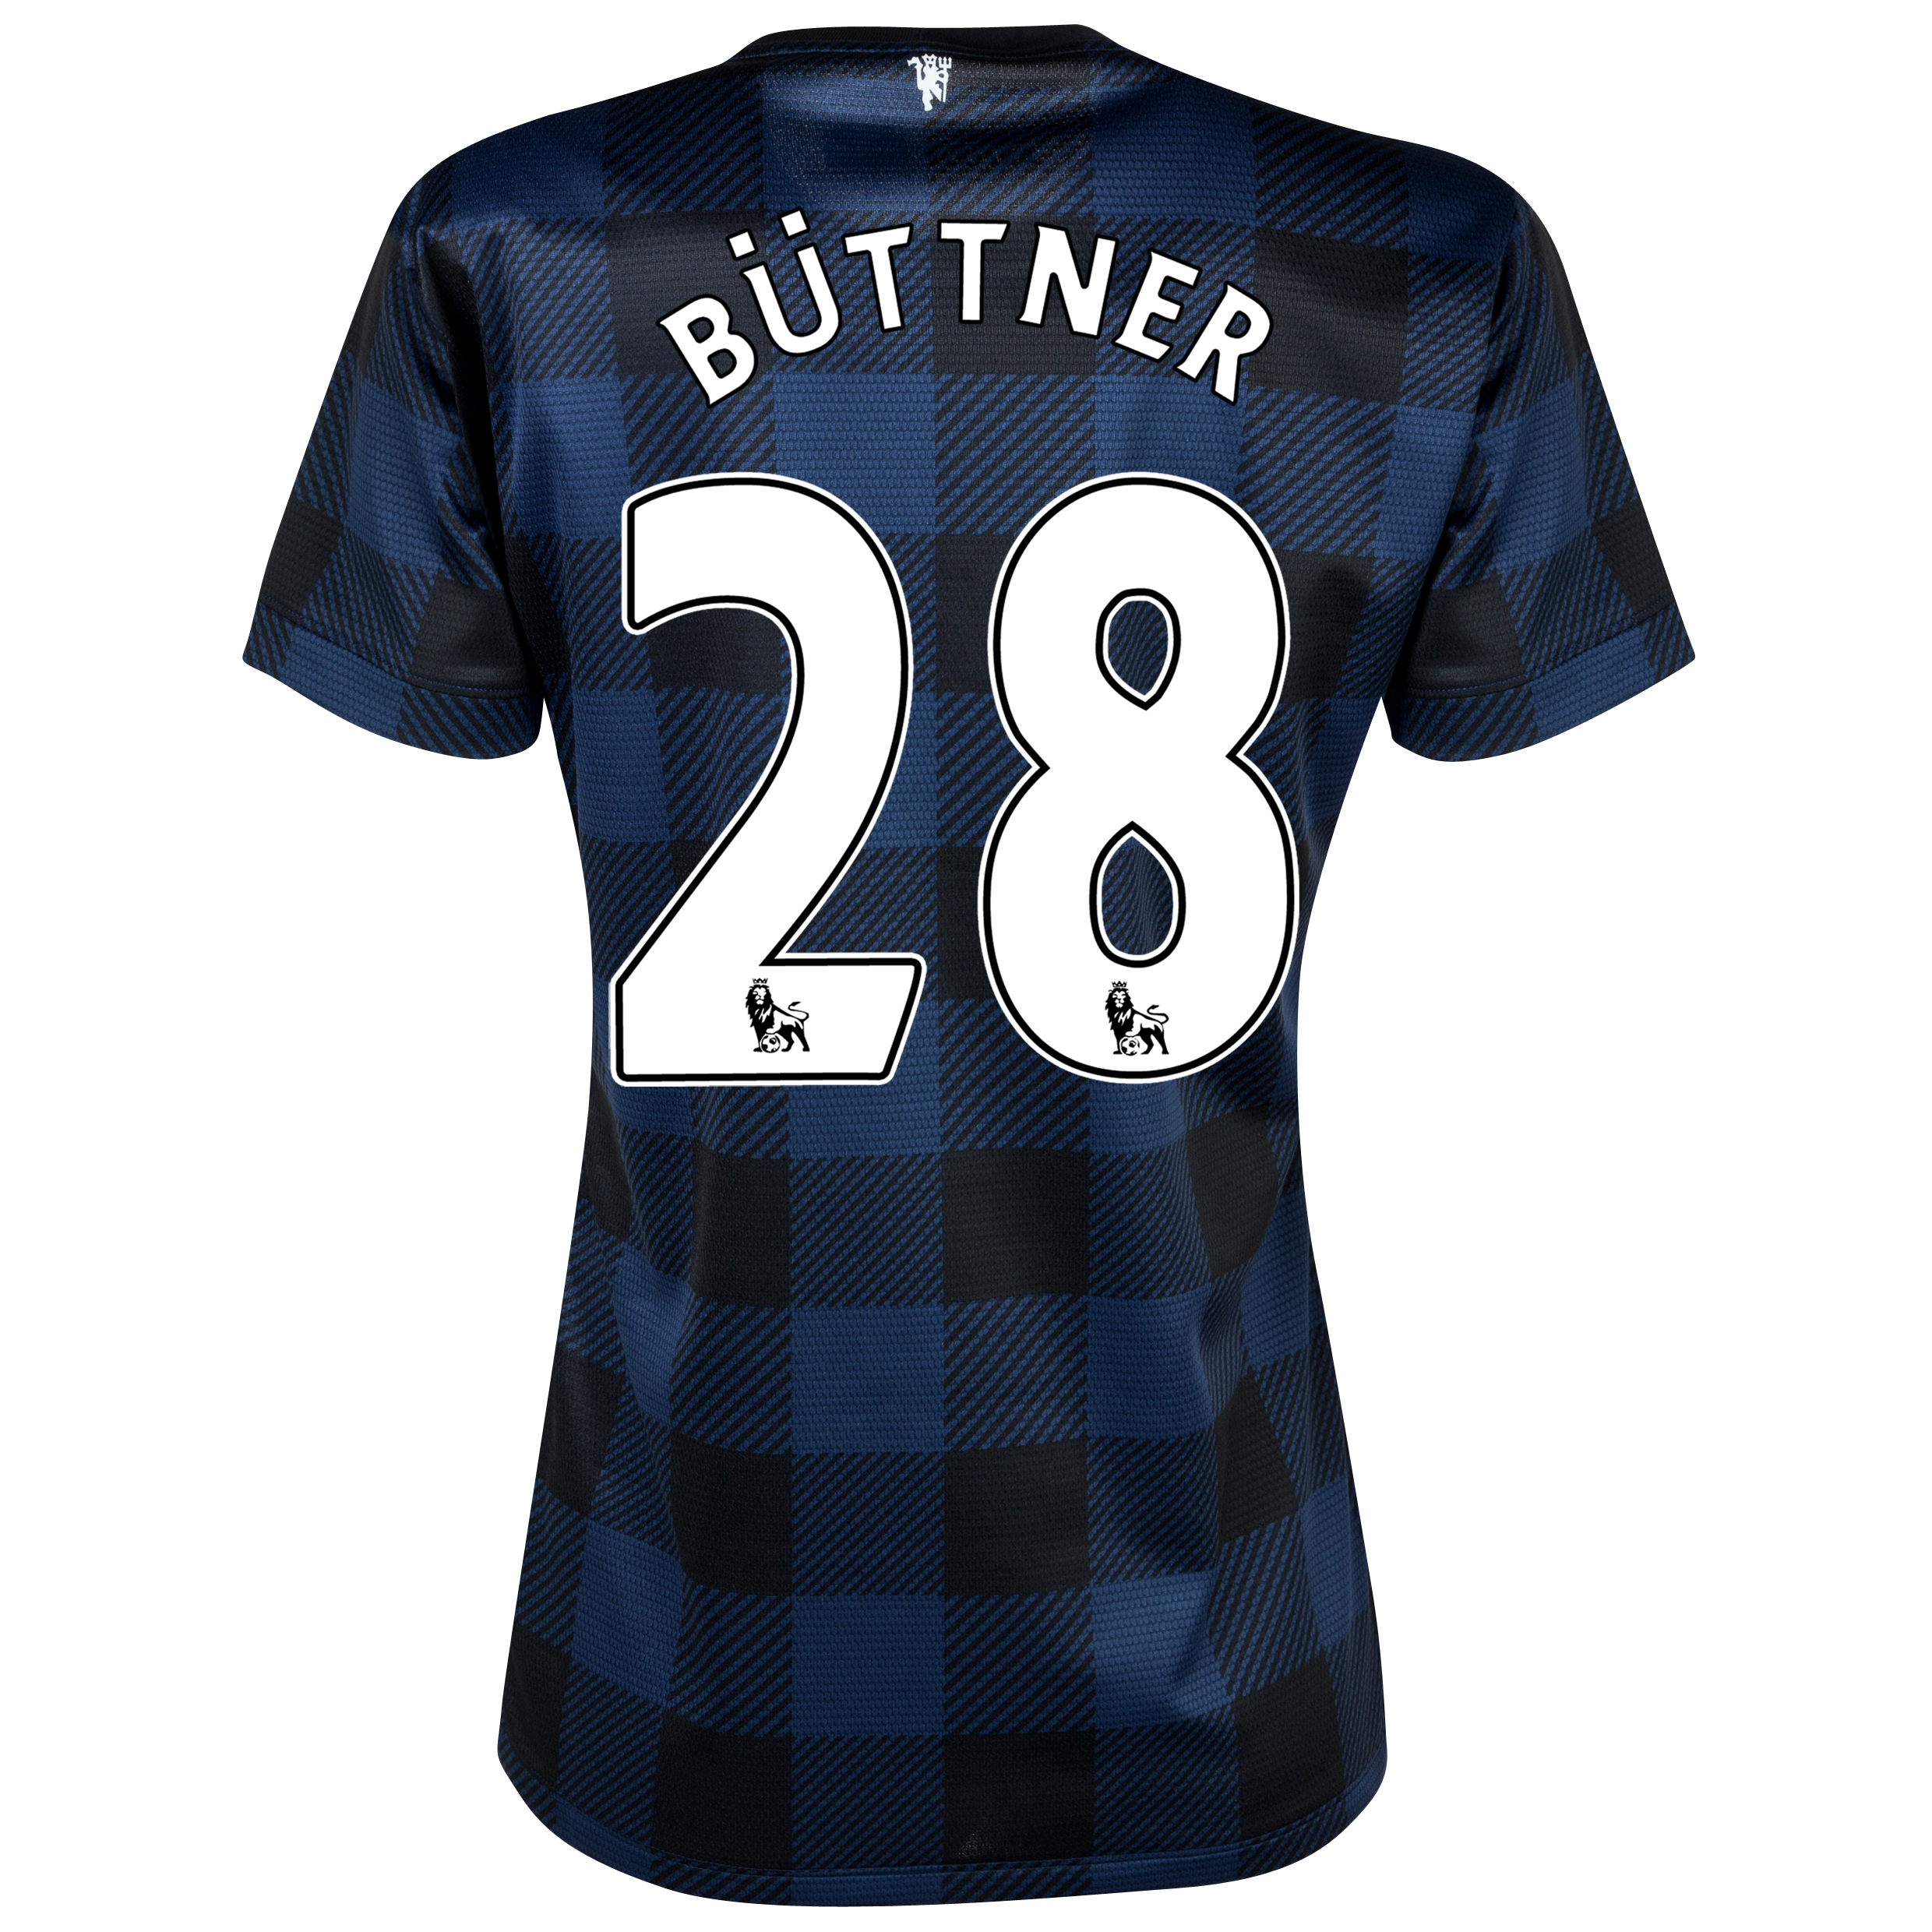 Manchester United Away Shirt 2013/14 - Womens with Büttner 28 printing